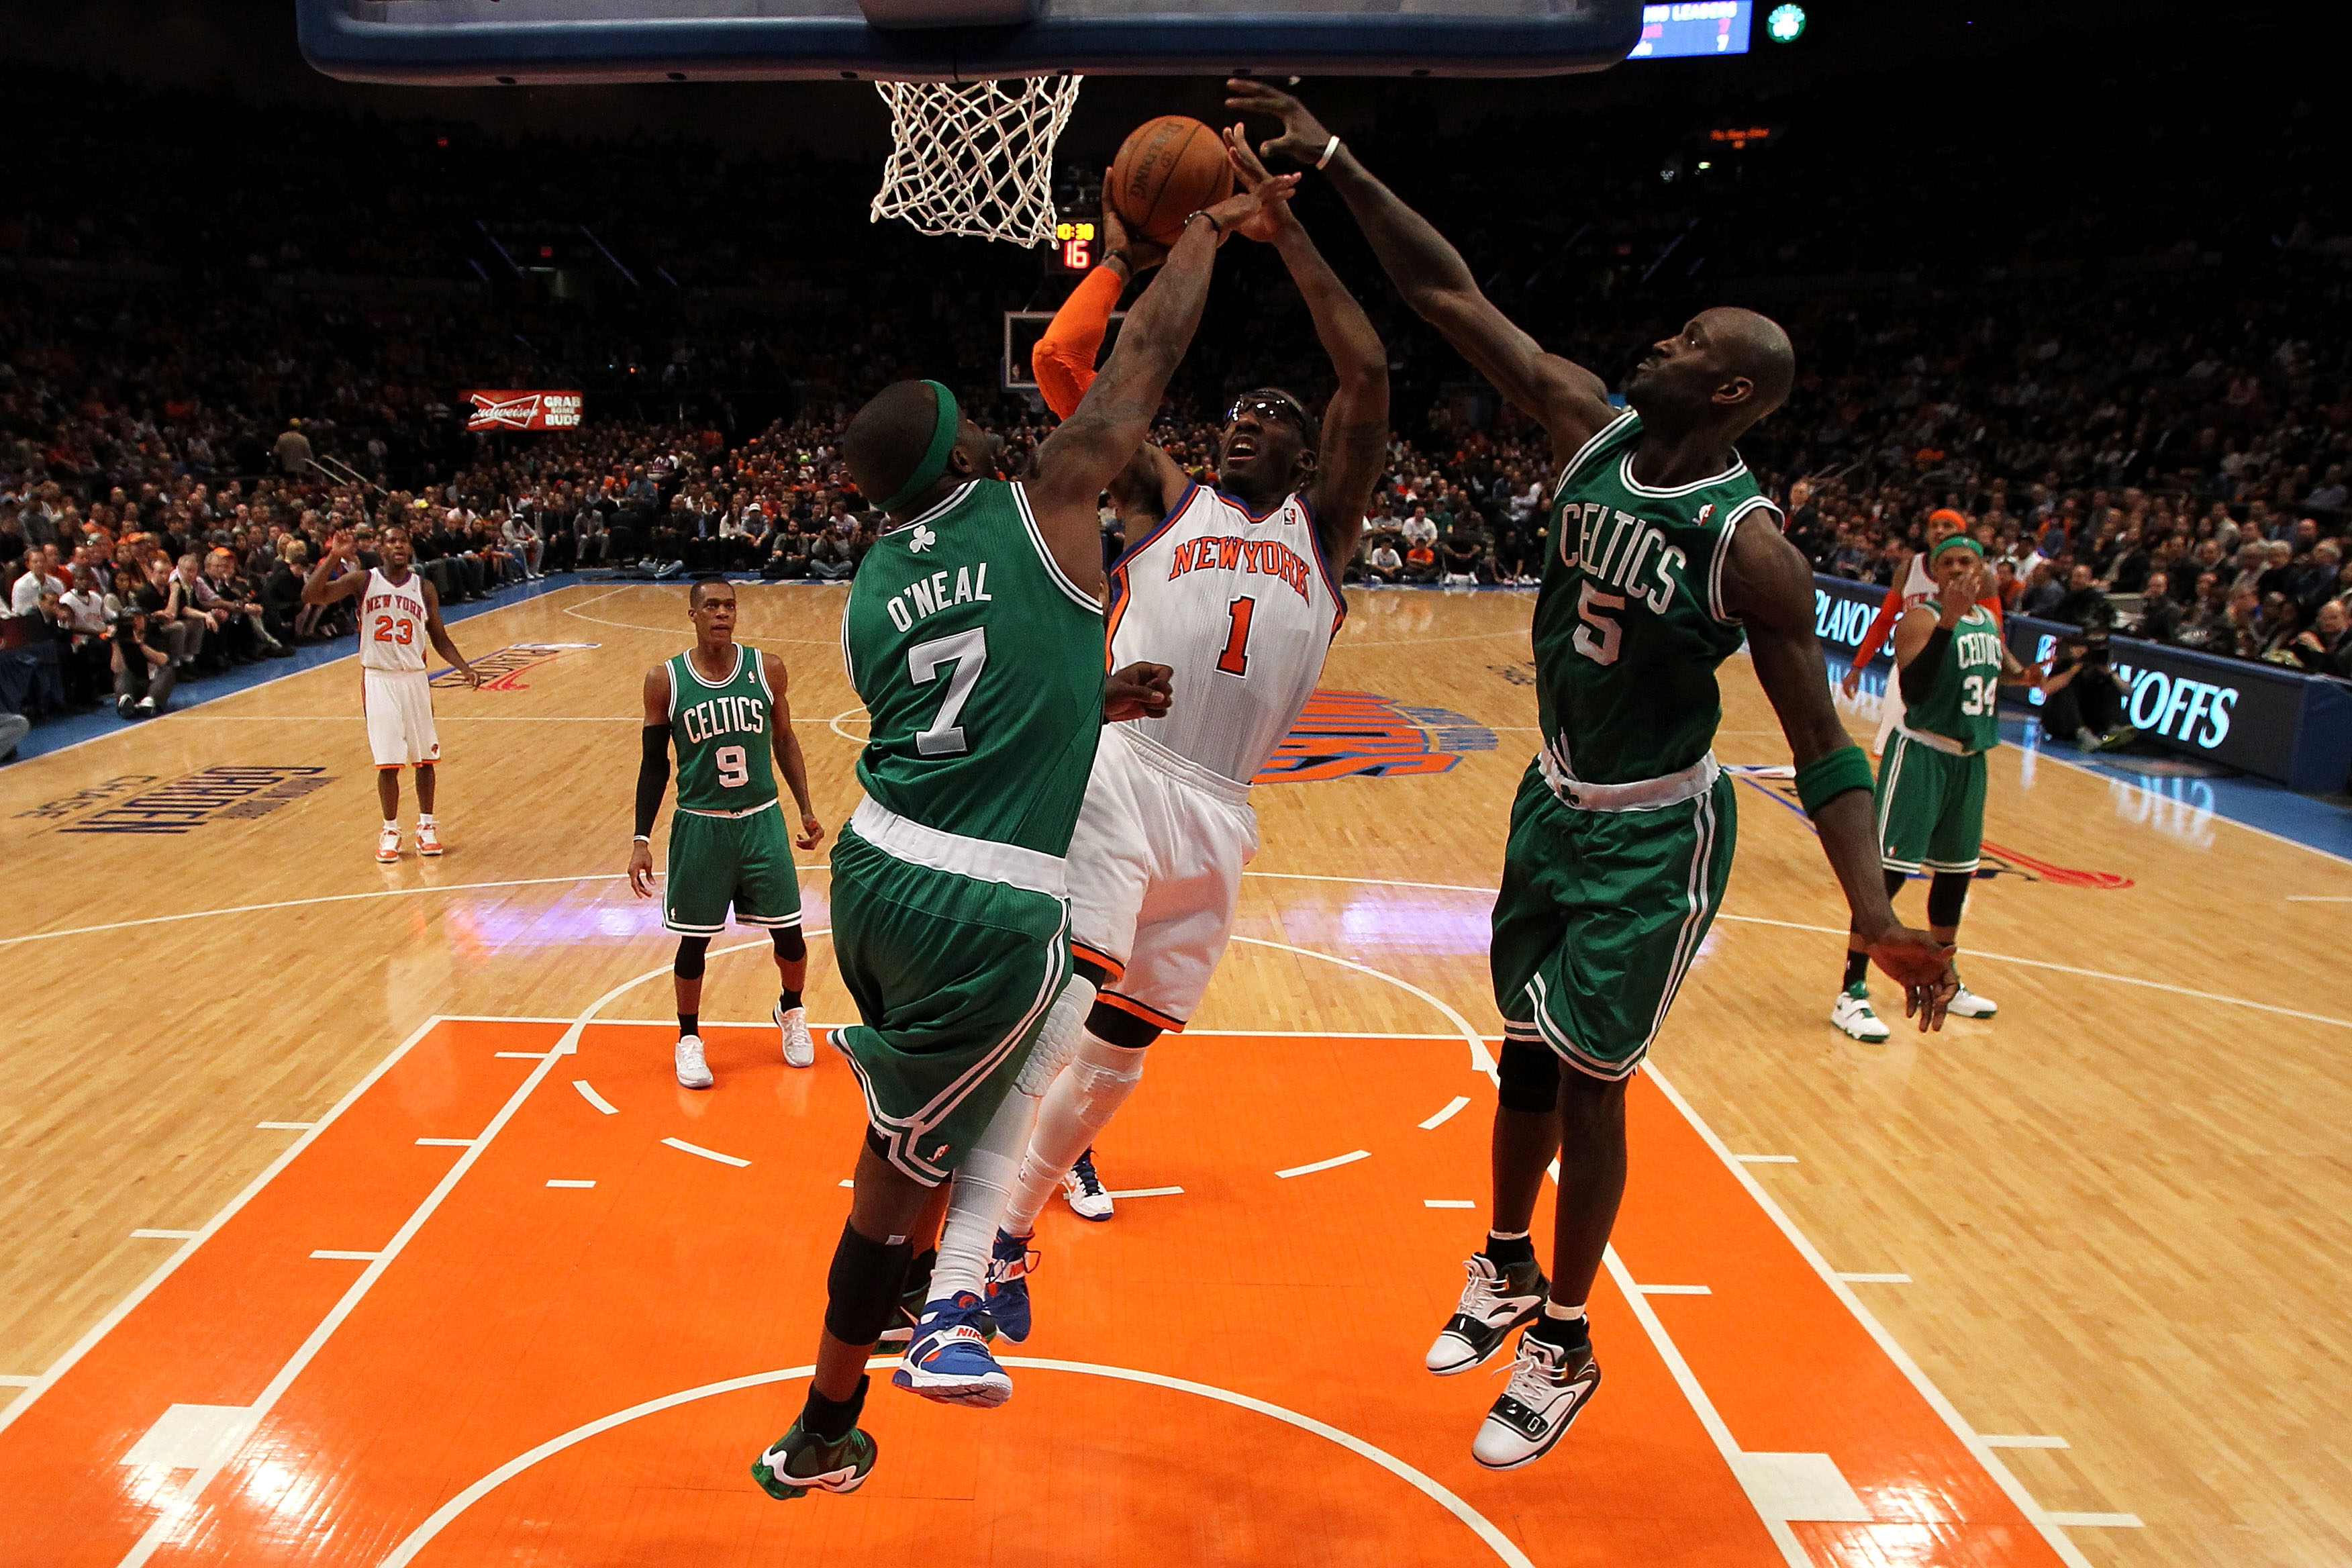 NEW YORK, NY - APRIL 22:  Amar'e Stoudemire #1 of the New York Knicks drives for a shot attempt against Jermaine O'Neal #7 and Kevin Garnett #5 of the Boston Celtics in Game Three of the Eastern Conference Quarterfinals in the 2011 NBA Playoffs on April 2